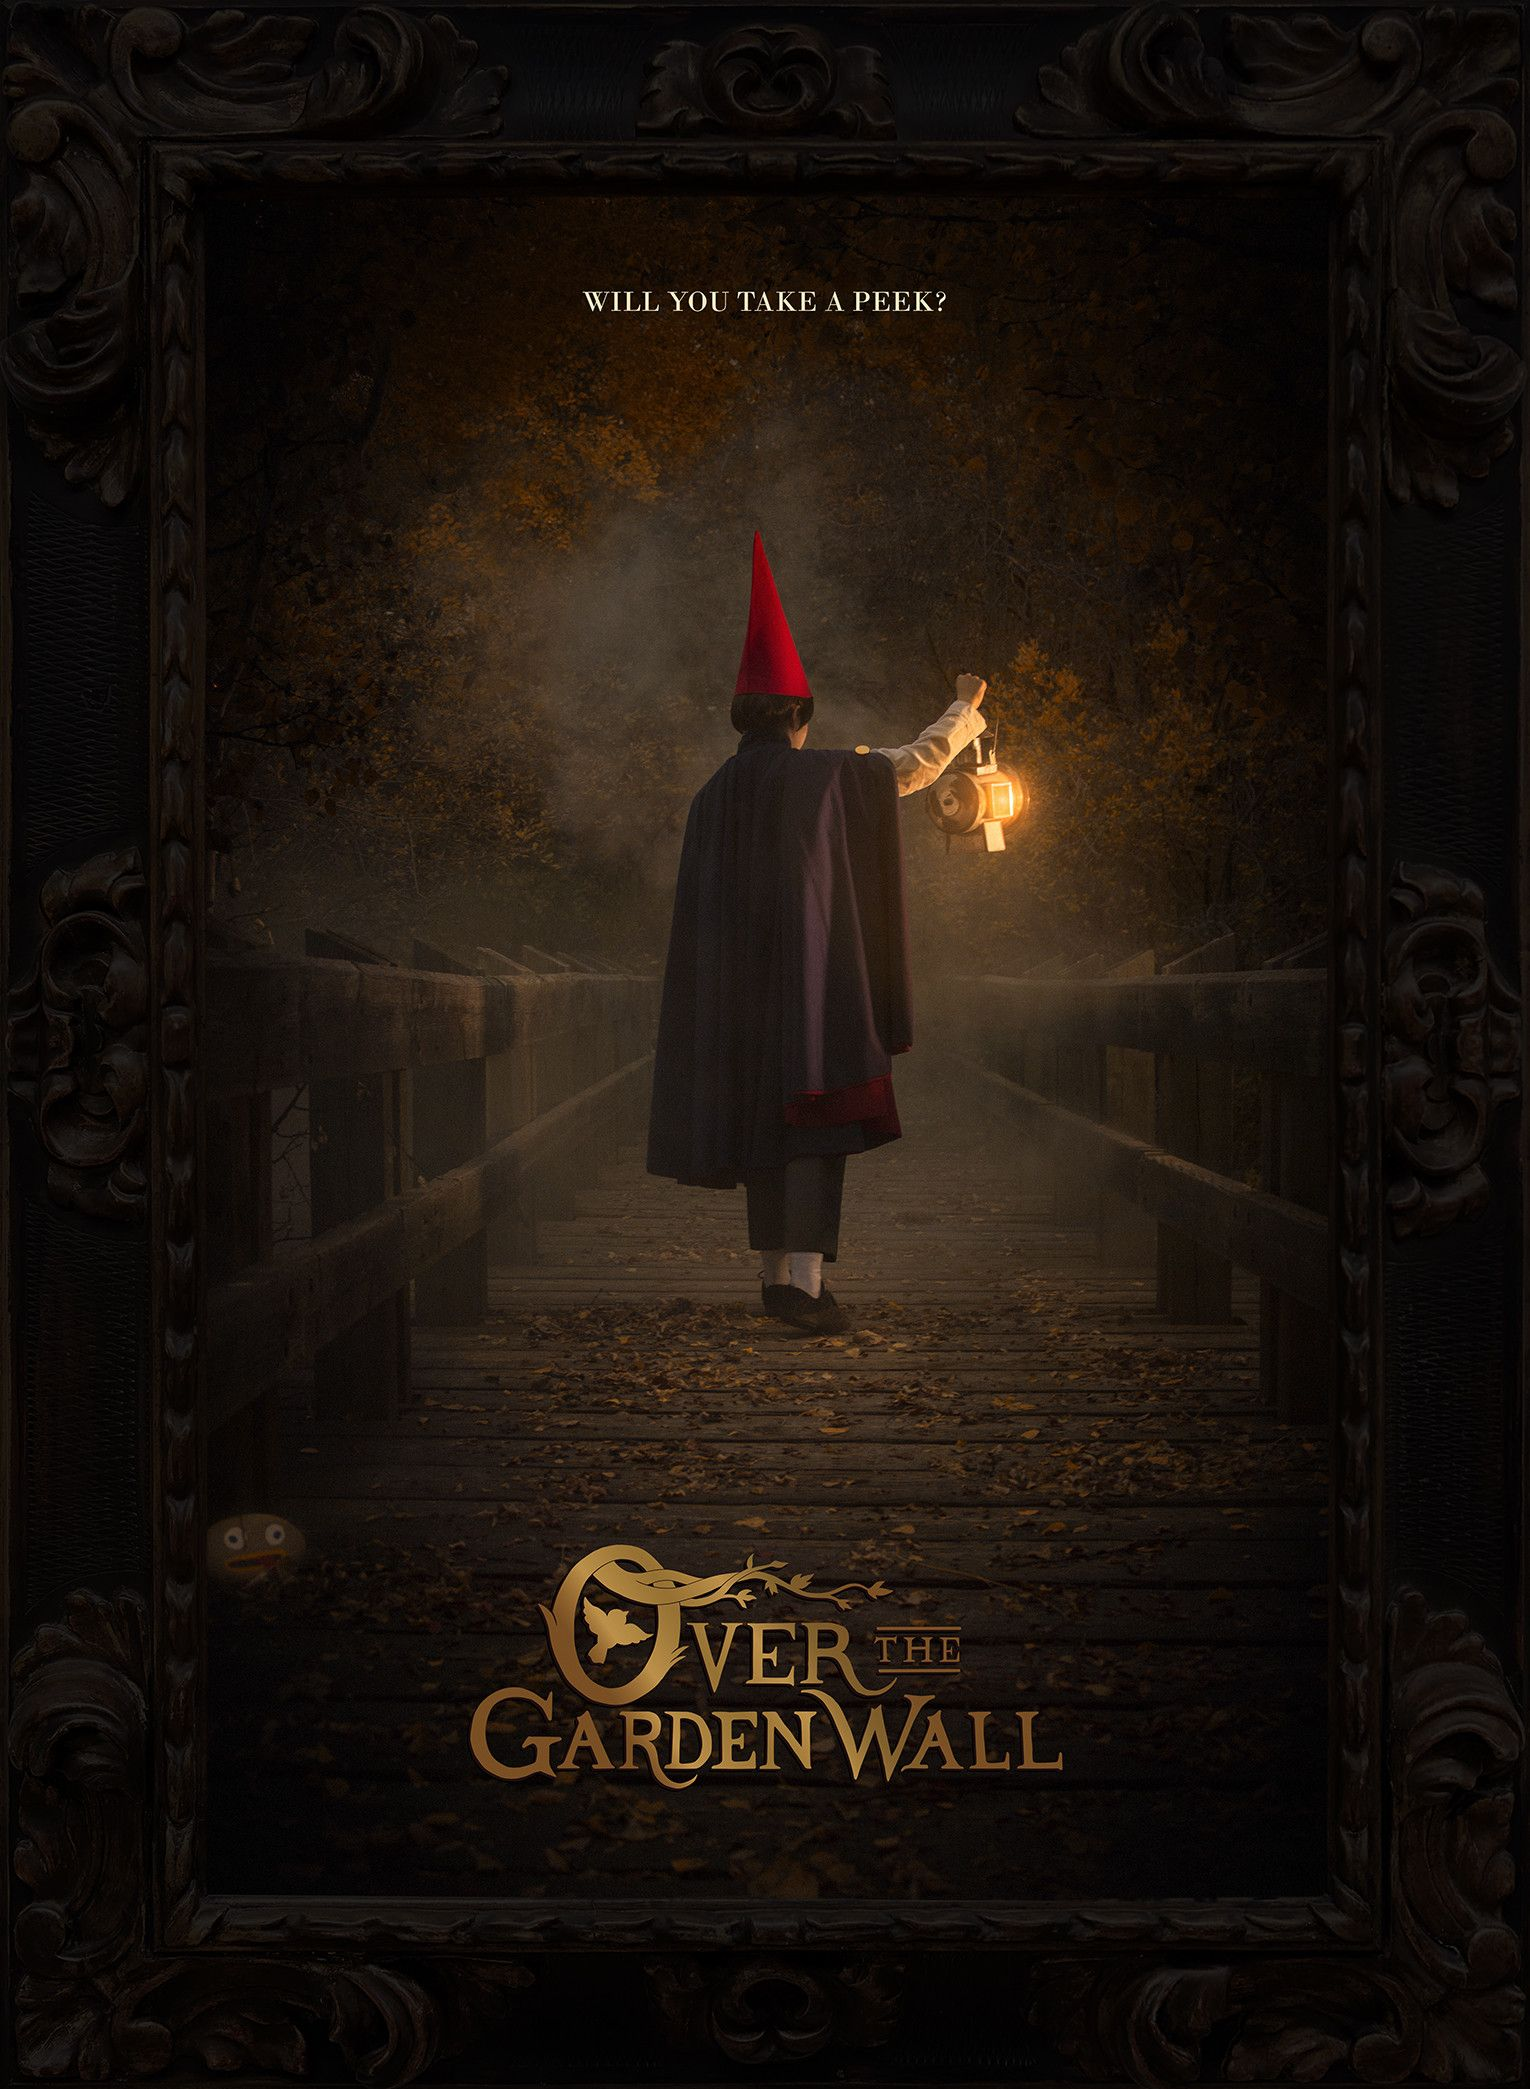 1530x2089 Over The Garden Wall Wikipedia Over The Garden Wall Garden Wall Garden Wall Art